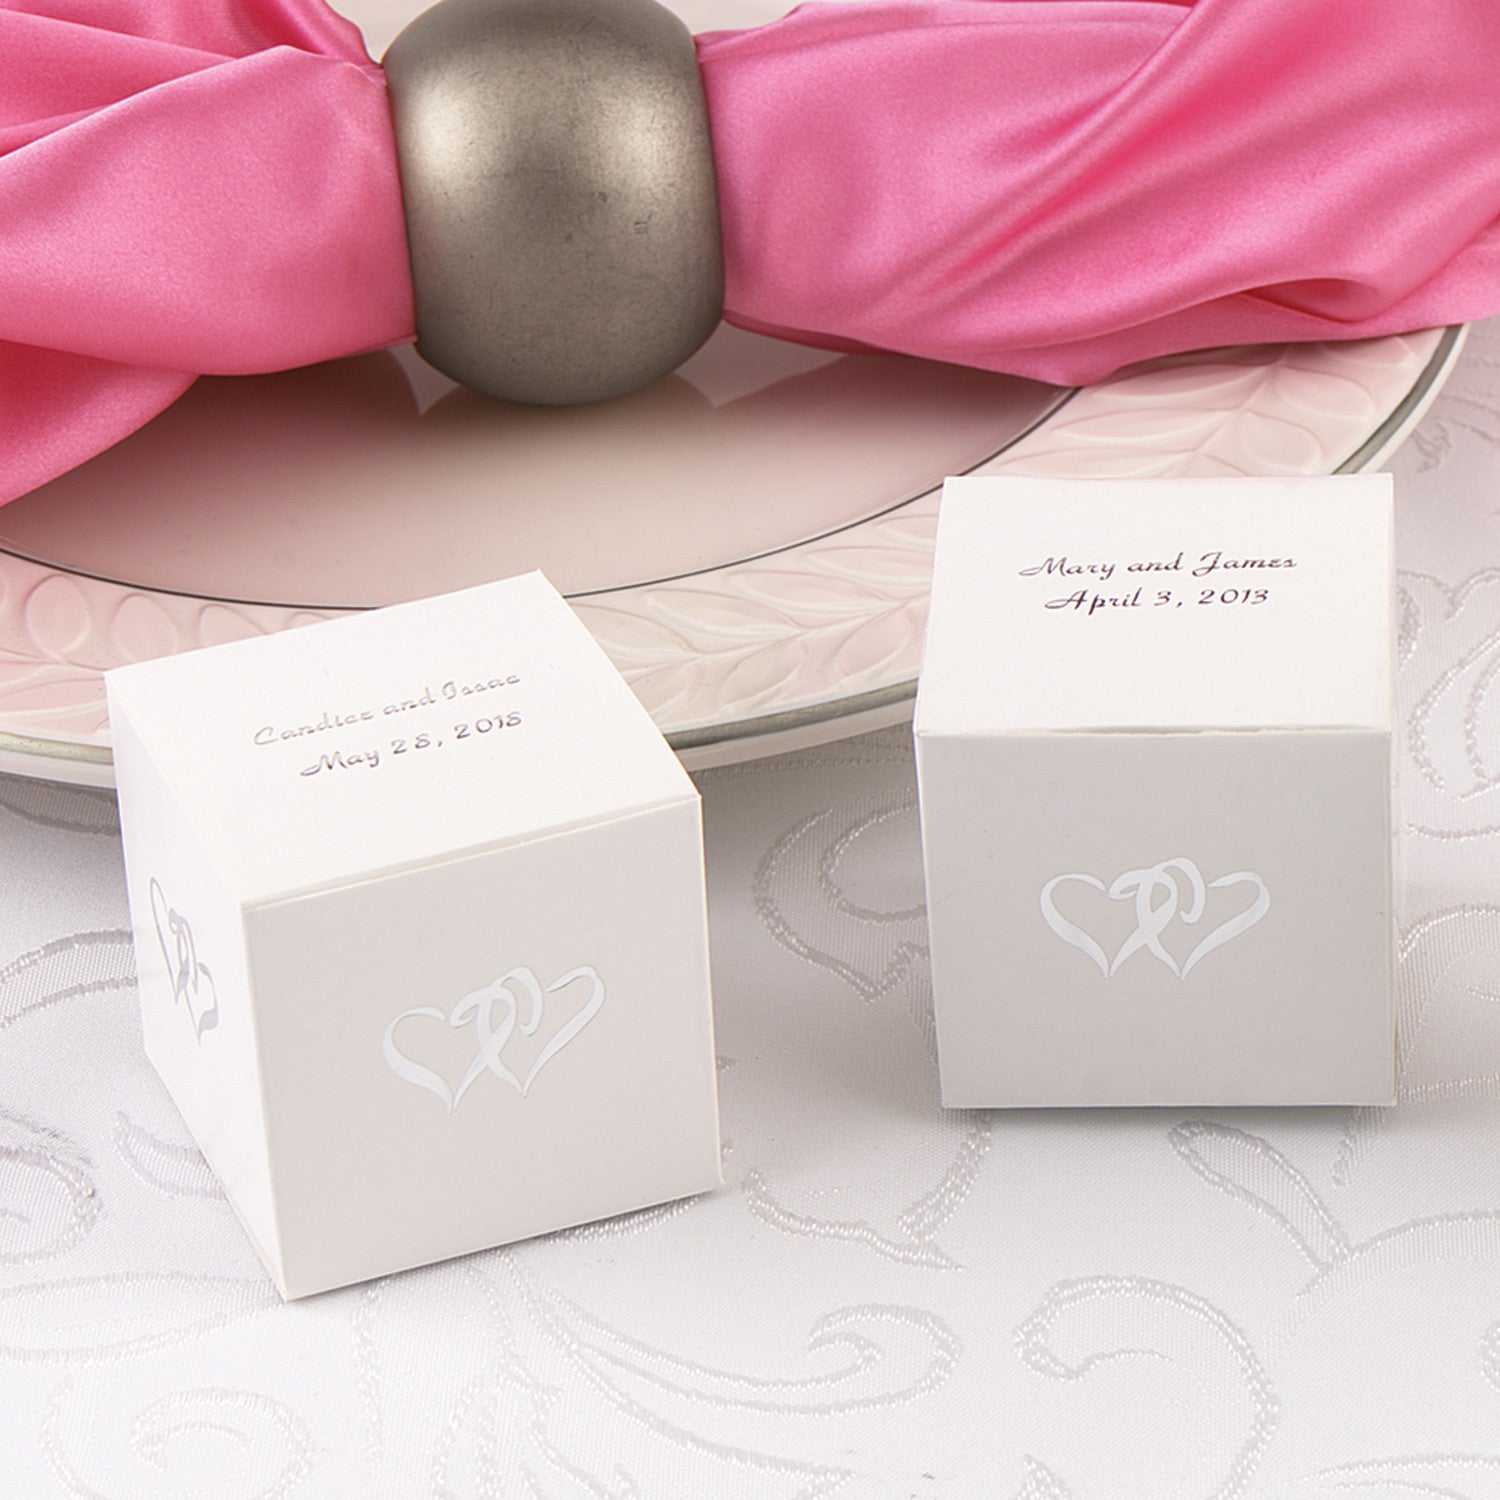 Wedding Personalized Favors personalized linked hearts white favor box candy cake weddings box